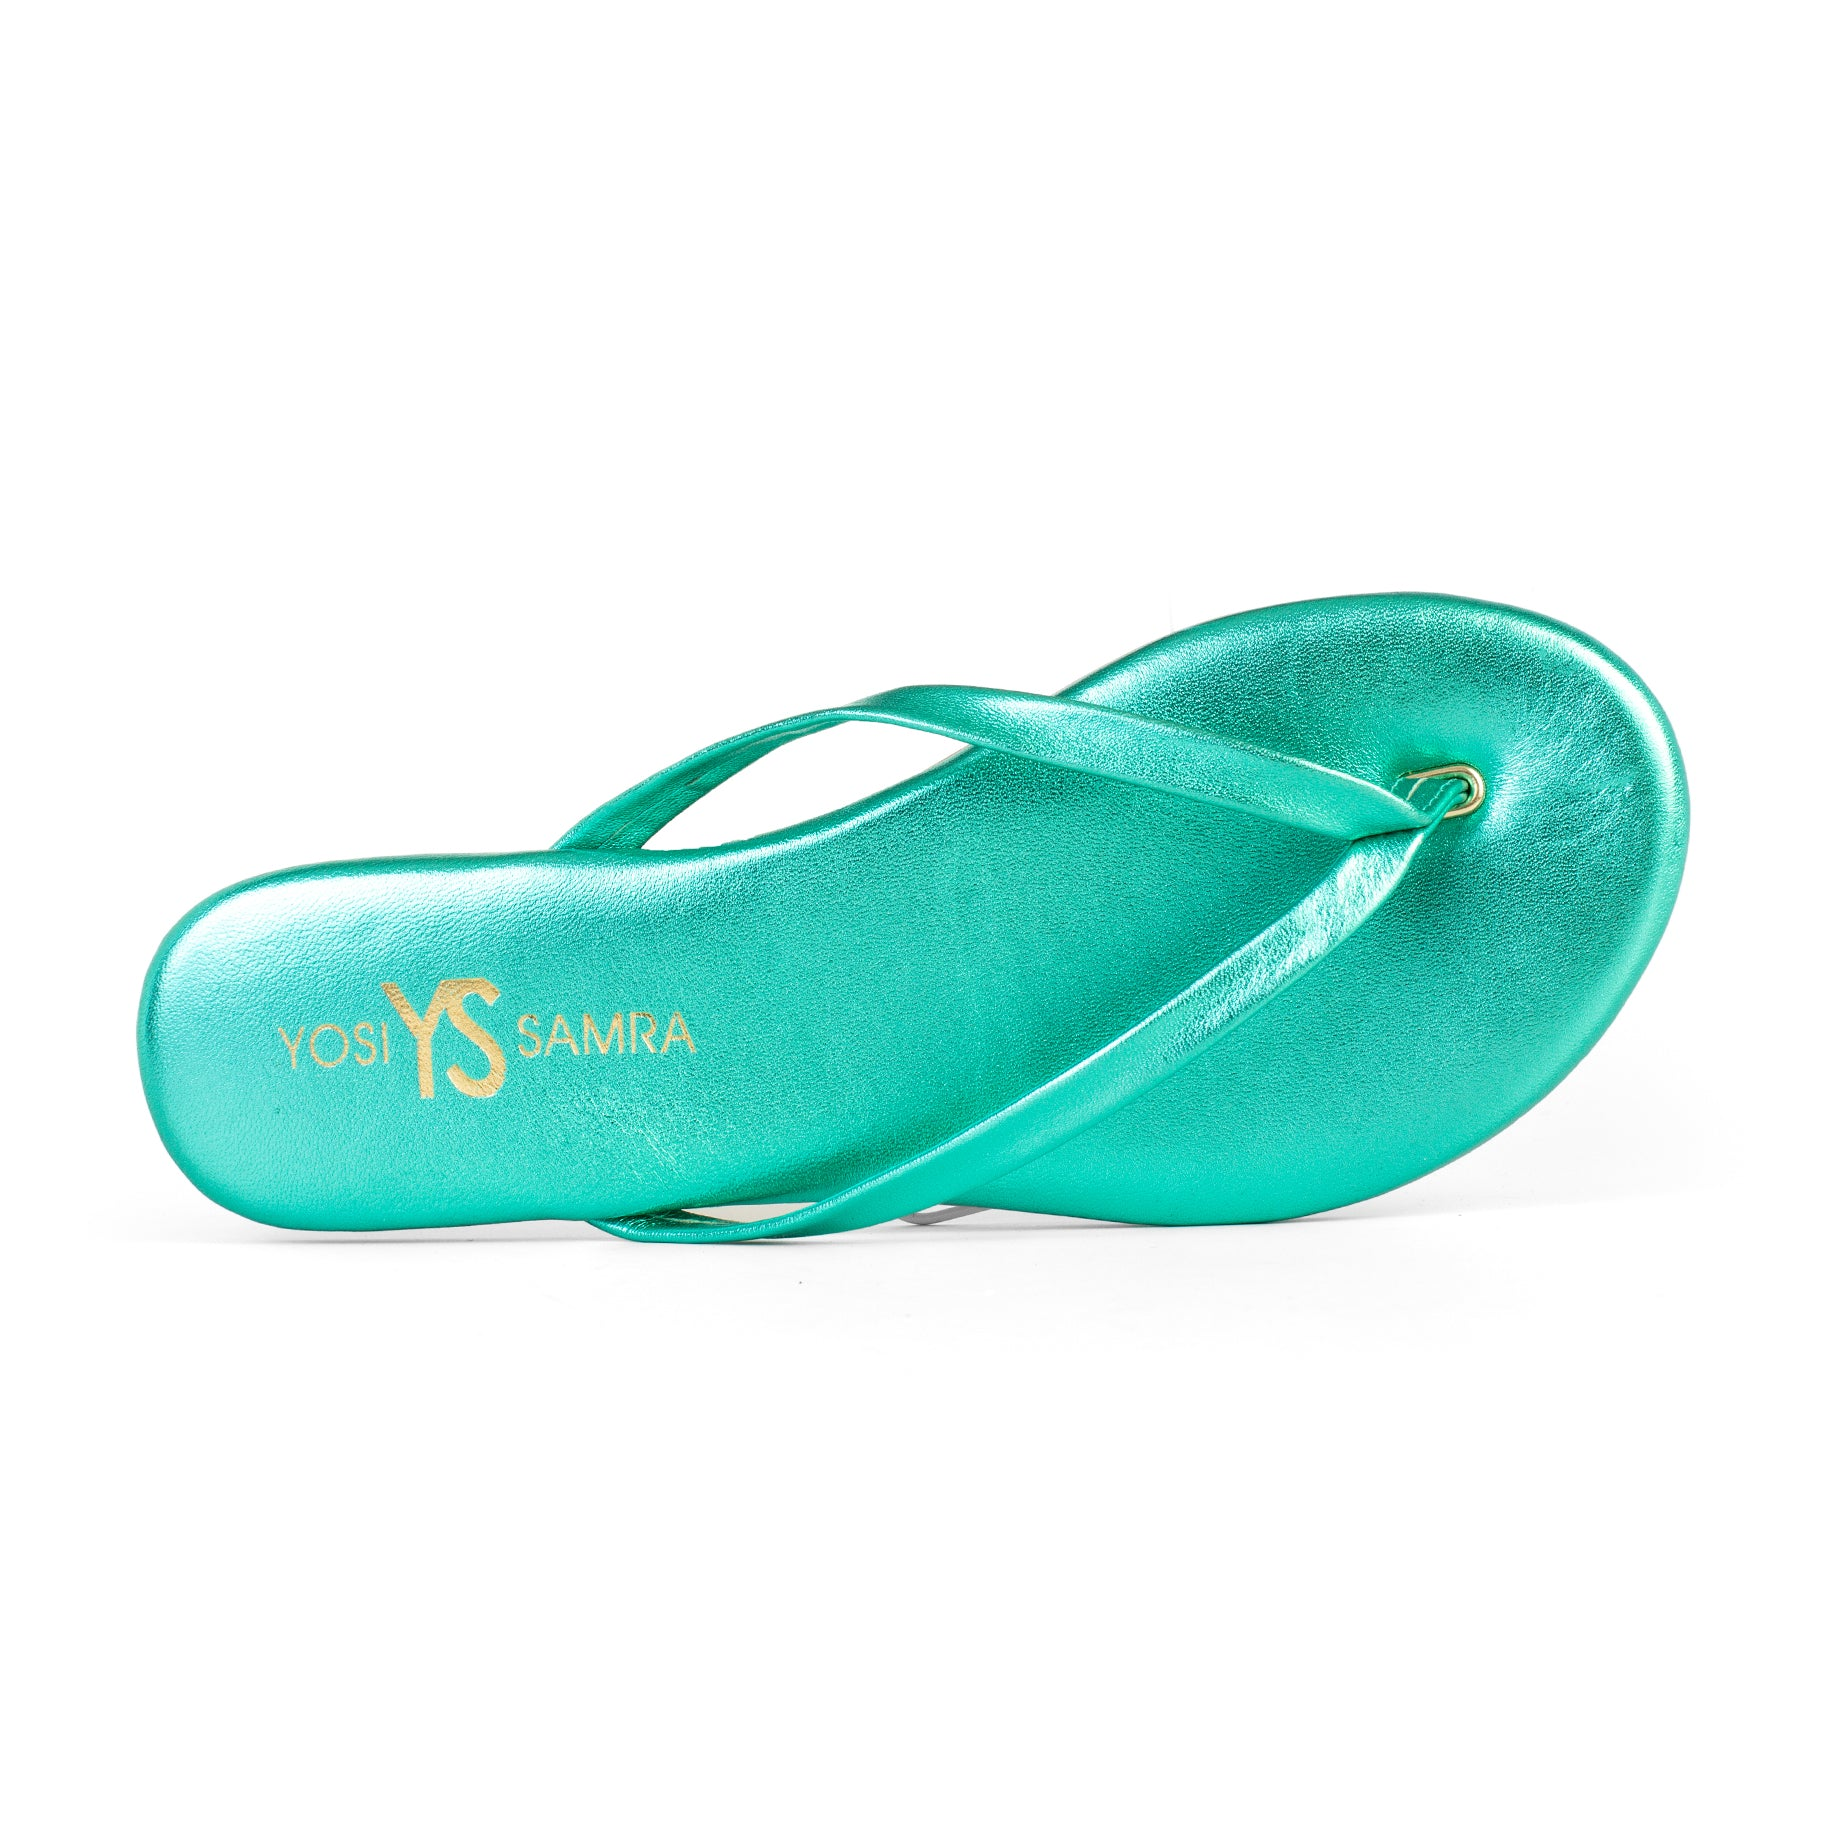 Yosi Samra seafoam blue green metallic leather flip flop